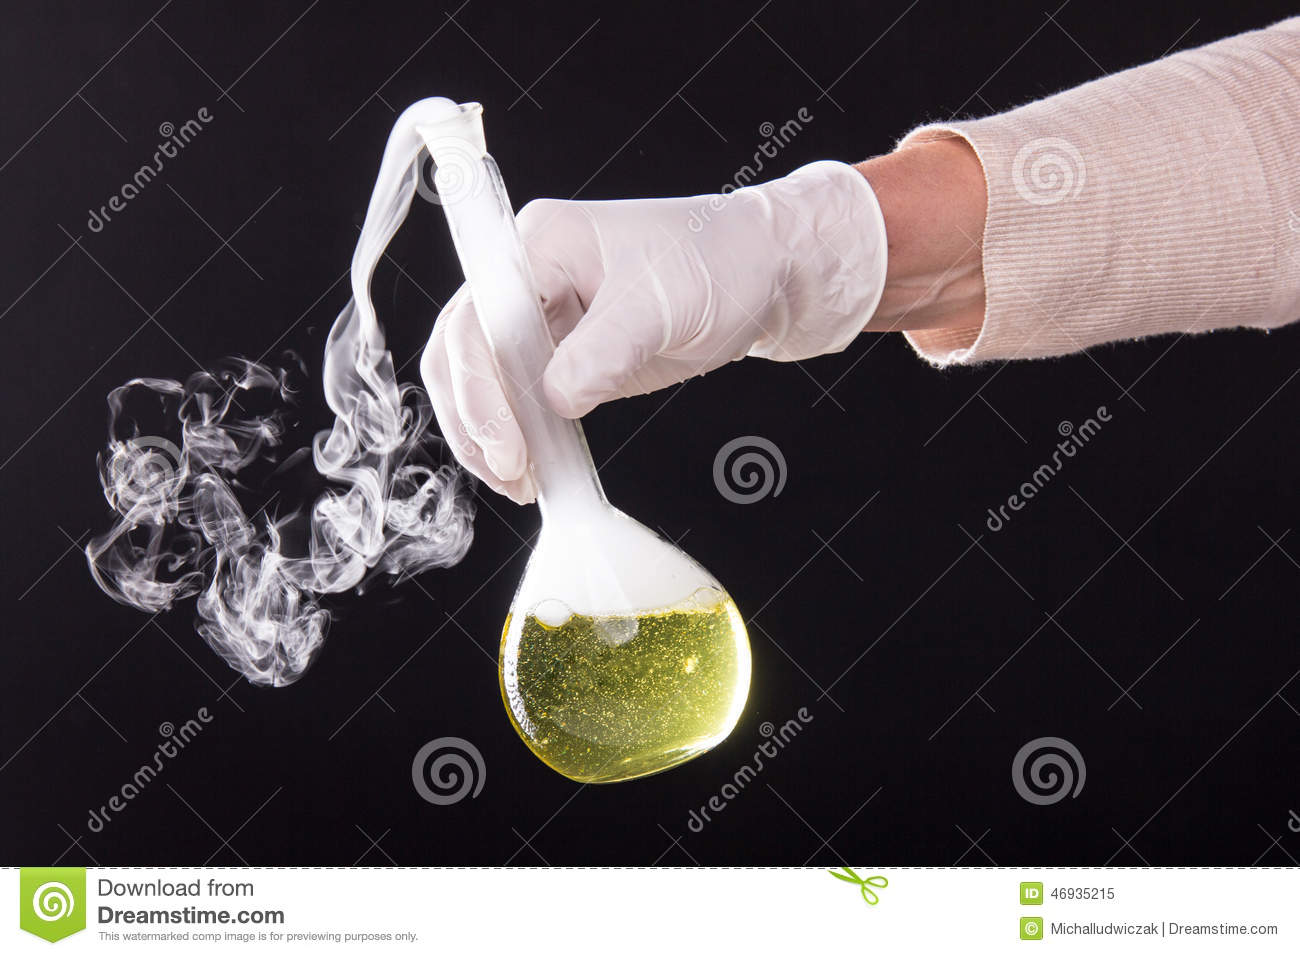 Chemical reaction in volumetric flask glass kept in the hands of